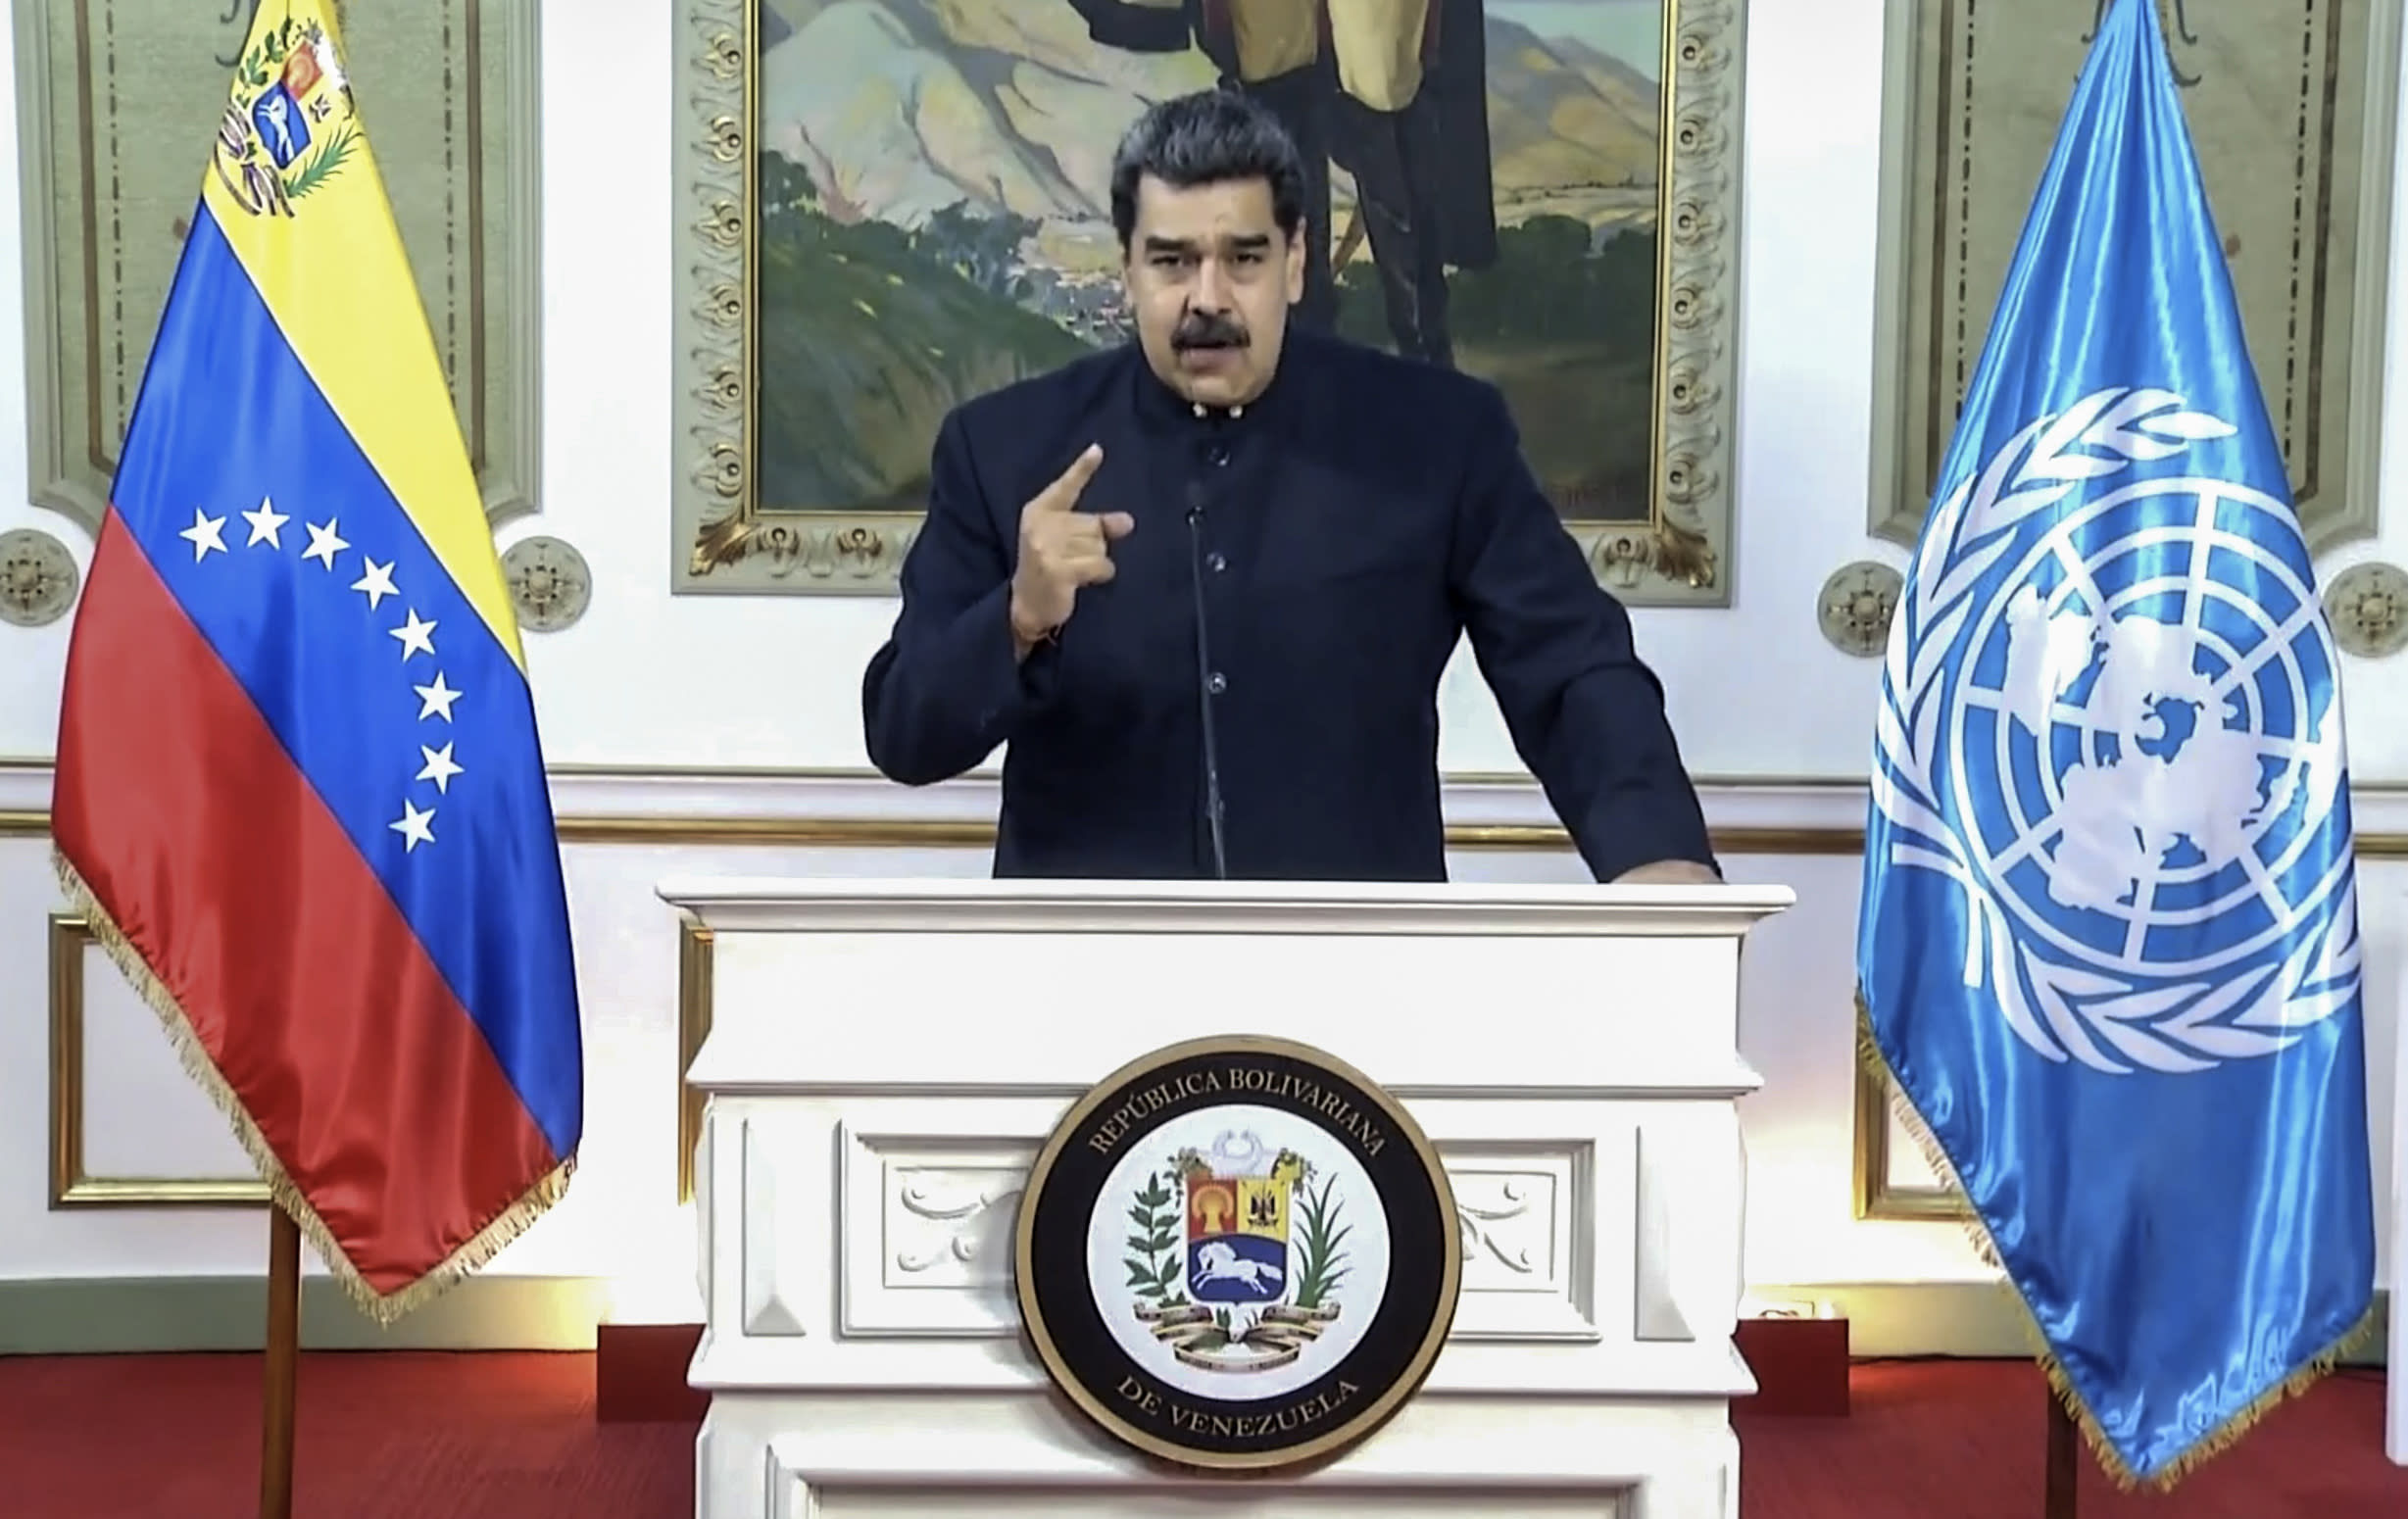 In this UNTV image, Nicolás Maduro Moros, President of Venezuela, speaks in a pre-recorded video message during the 75th session of the United Nations General Assembly, Wednesday, Sept. 23, 2020, at UN headquarters in New York. The U.N.'s first virtual meeting of world leaders started Tuesday with pre-recorded speeches from heads-of-state, kept at home by the coronavirus pandemic. (UNTV via AP)